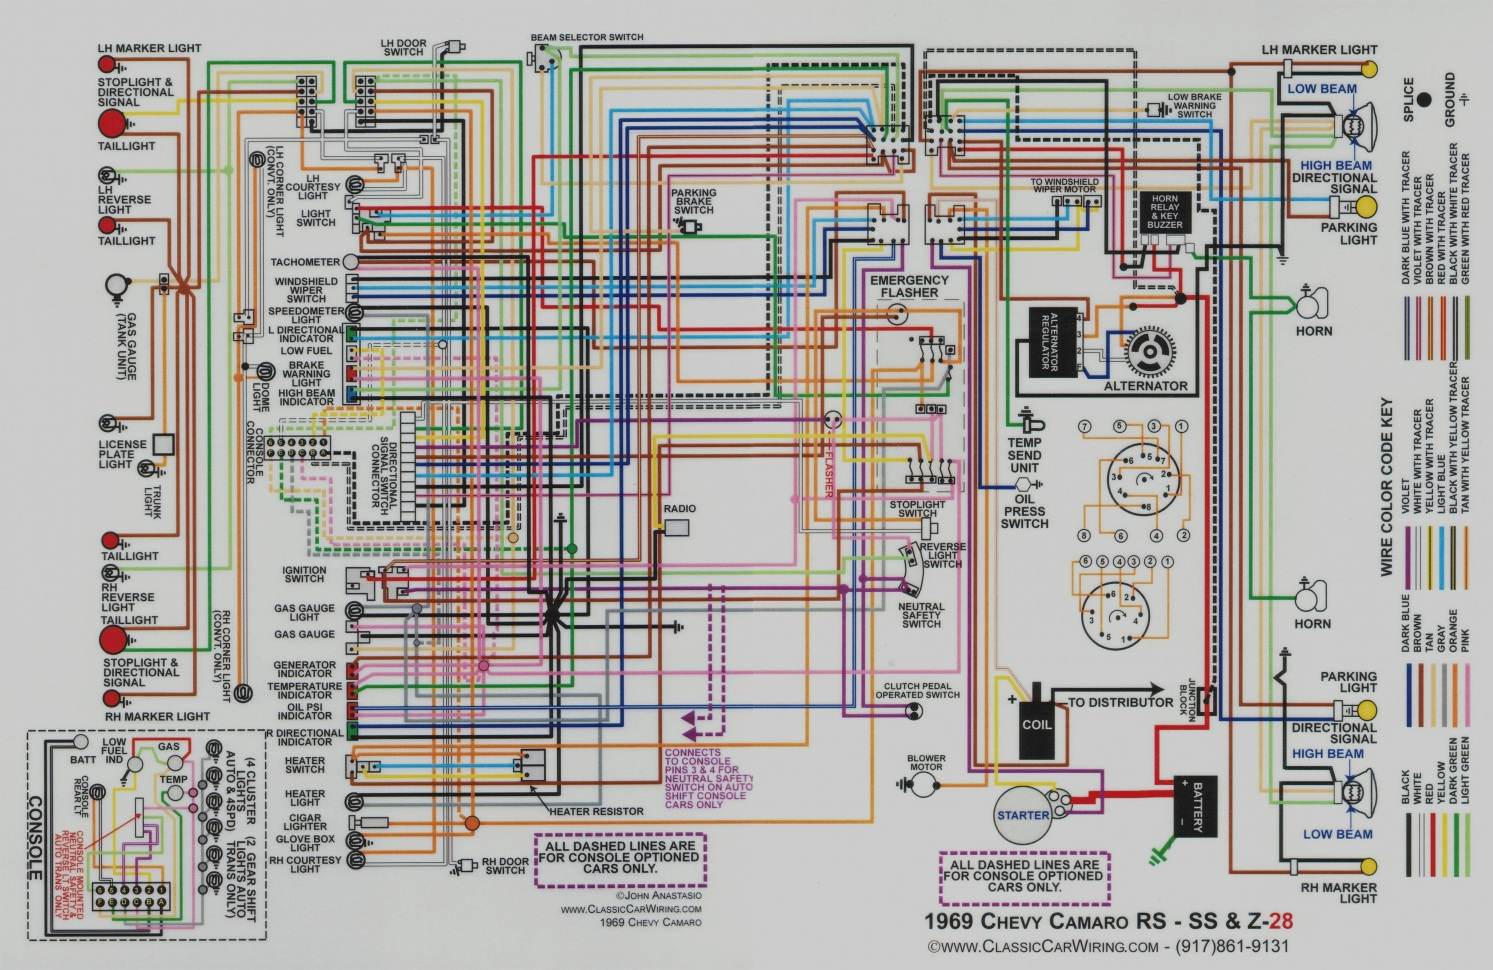 68 Vw Wiring Diagram Free Download Wiring Diagram And Circuit